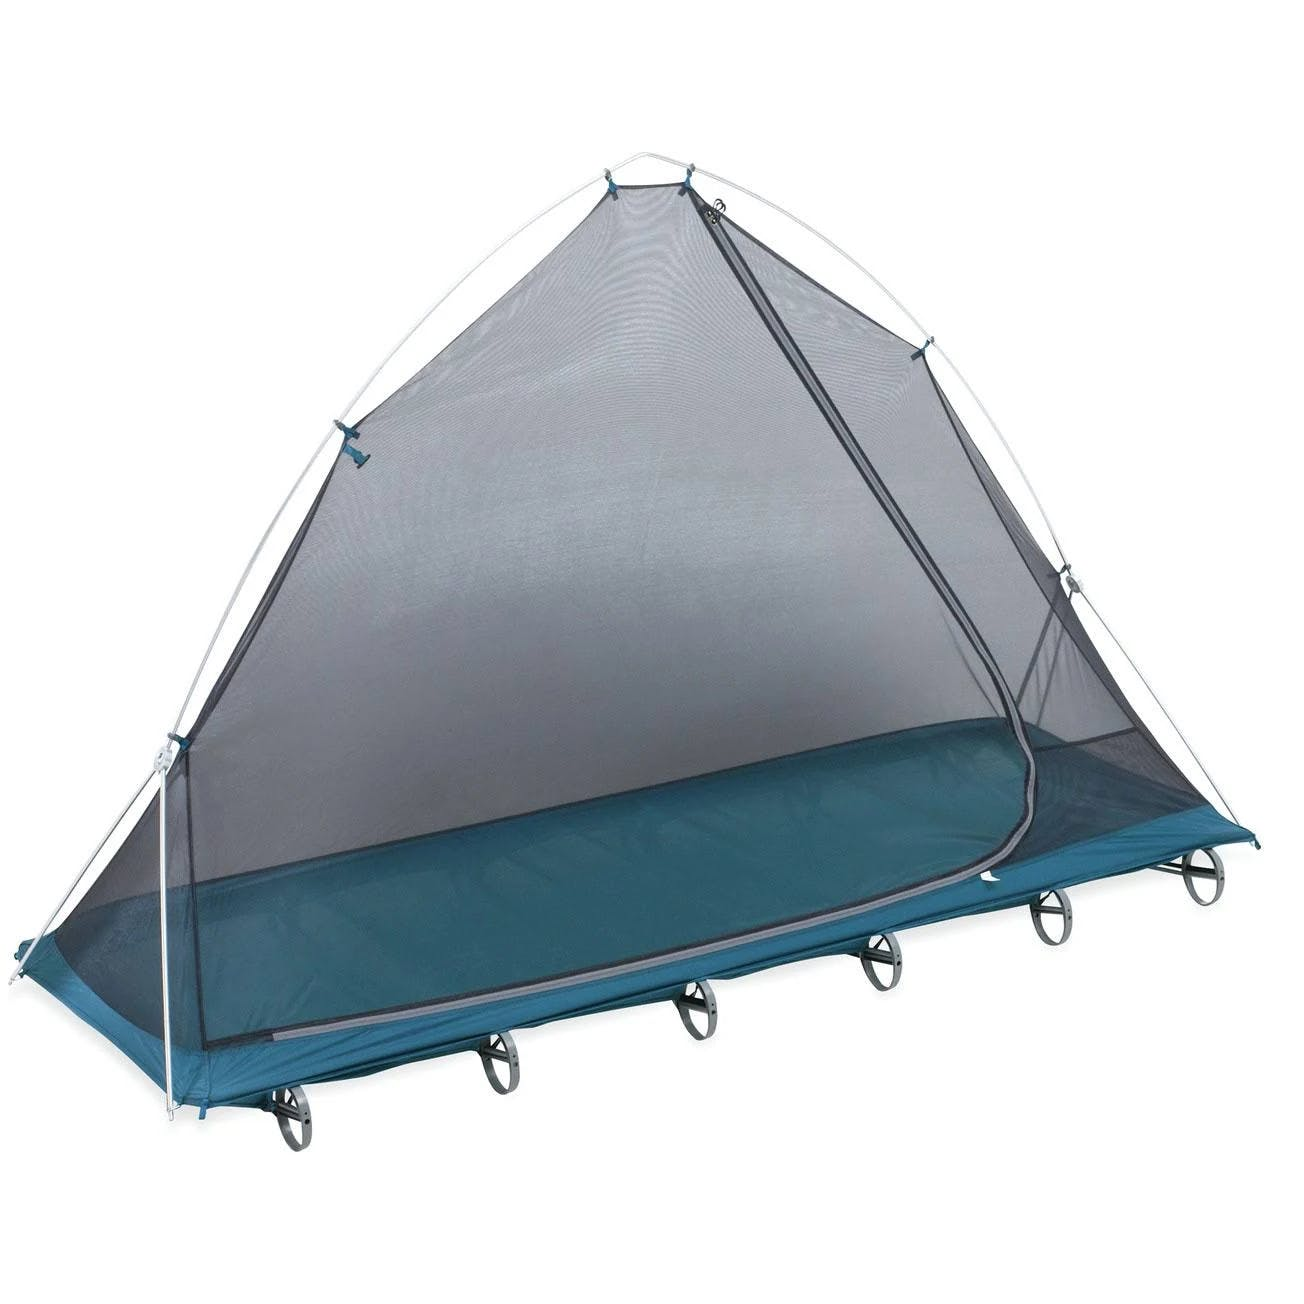 Therm-a-Rest LuxuryLite Cot Bug Shelter, Blue/Gray, Regular